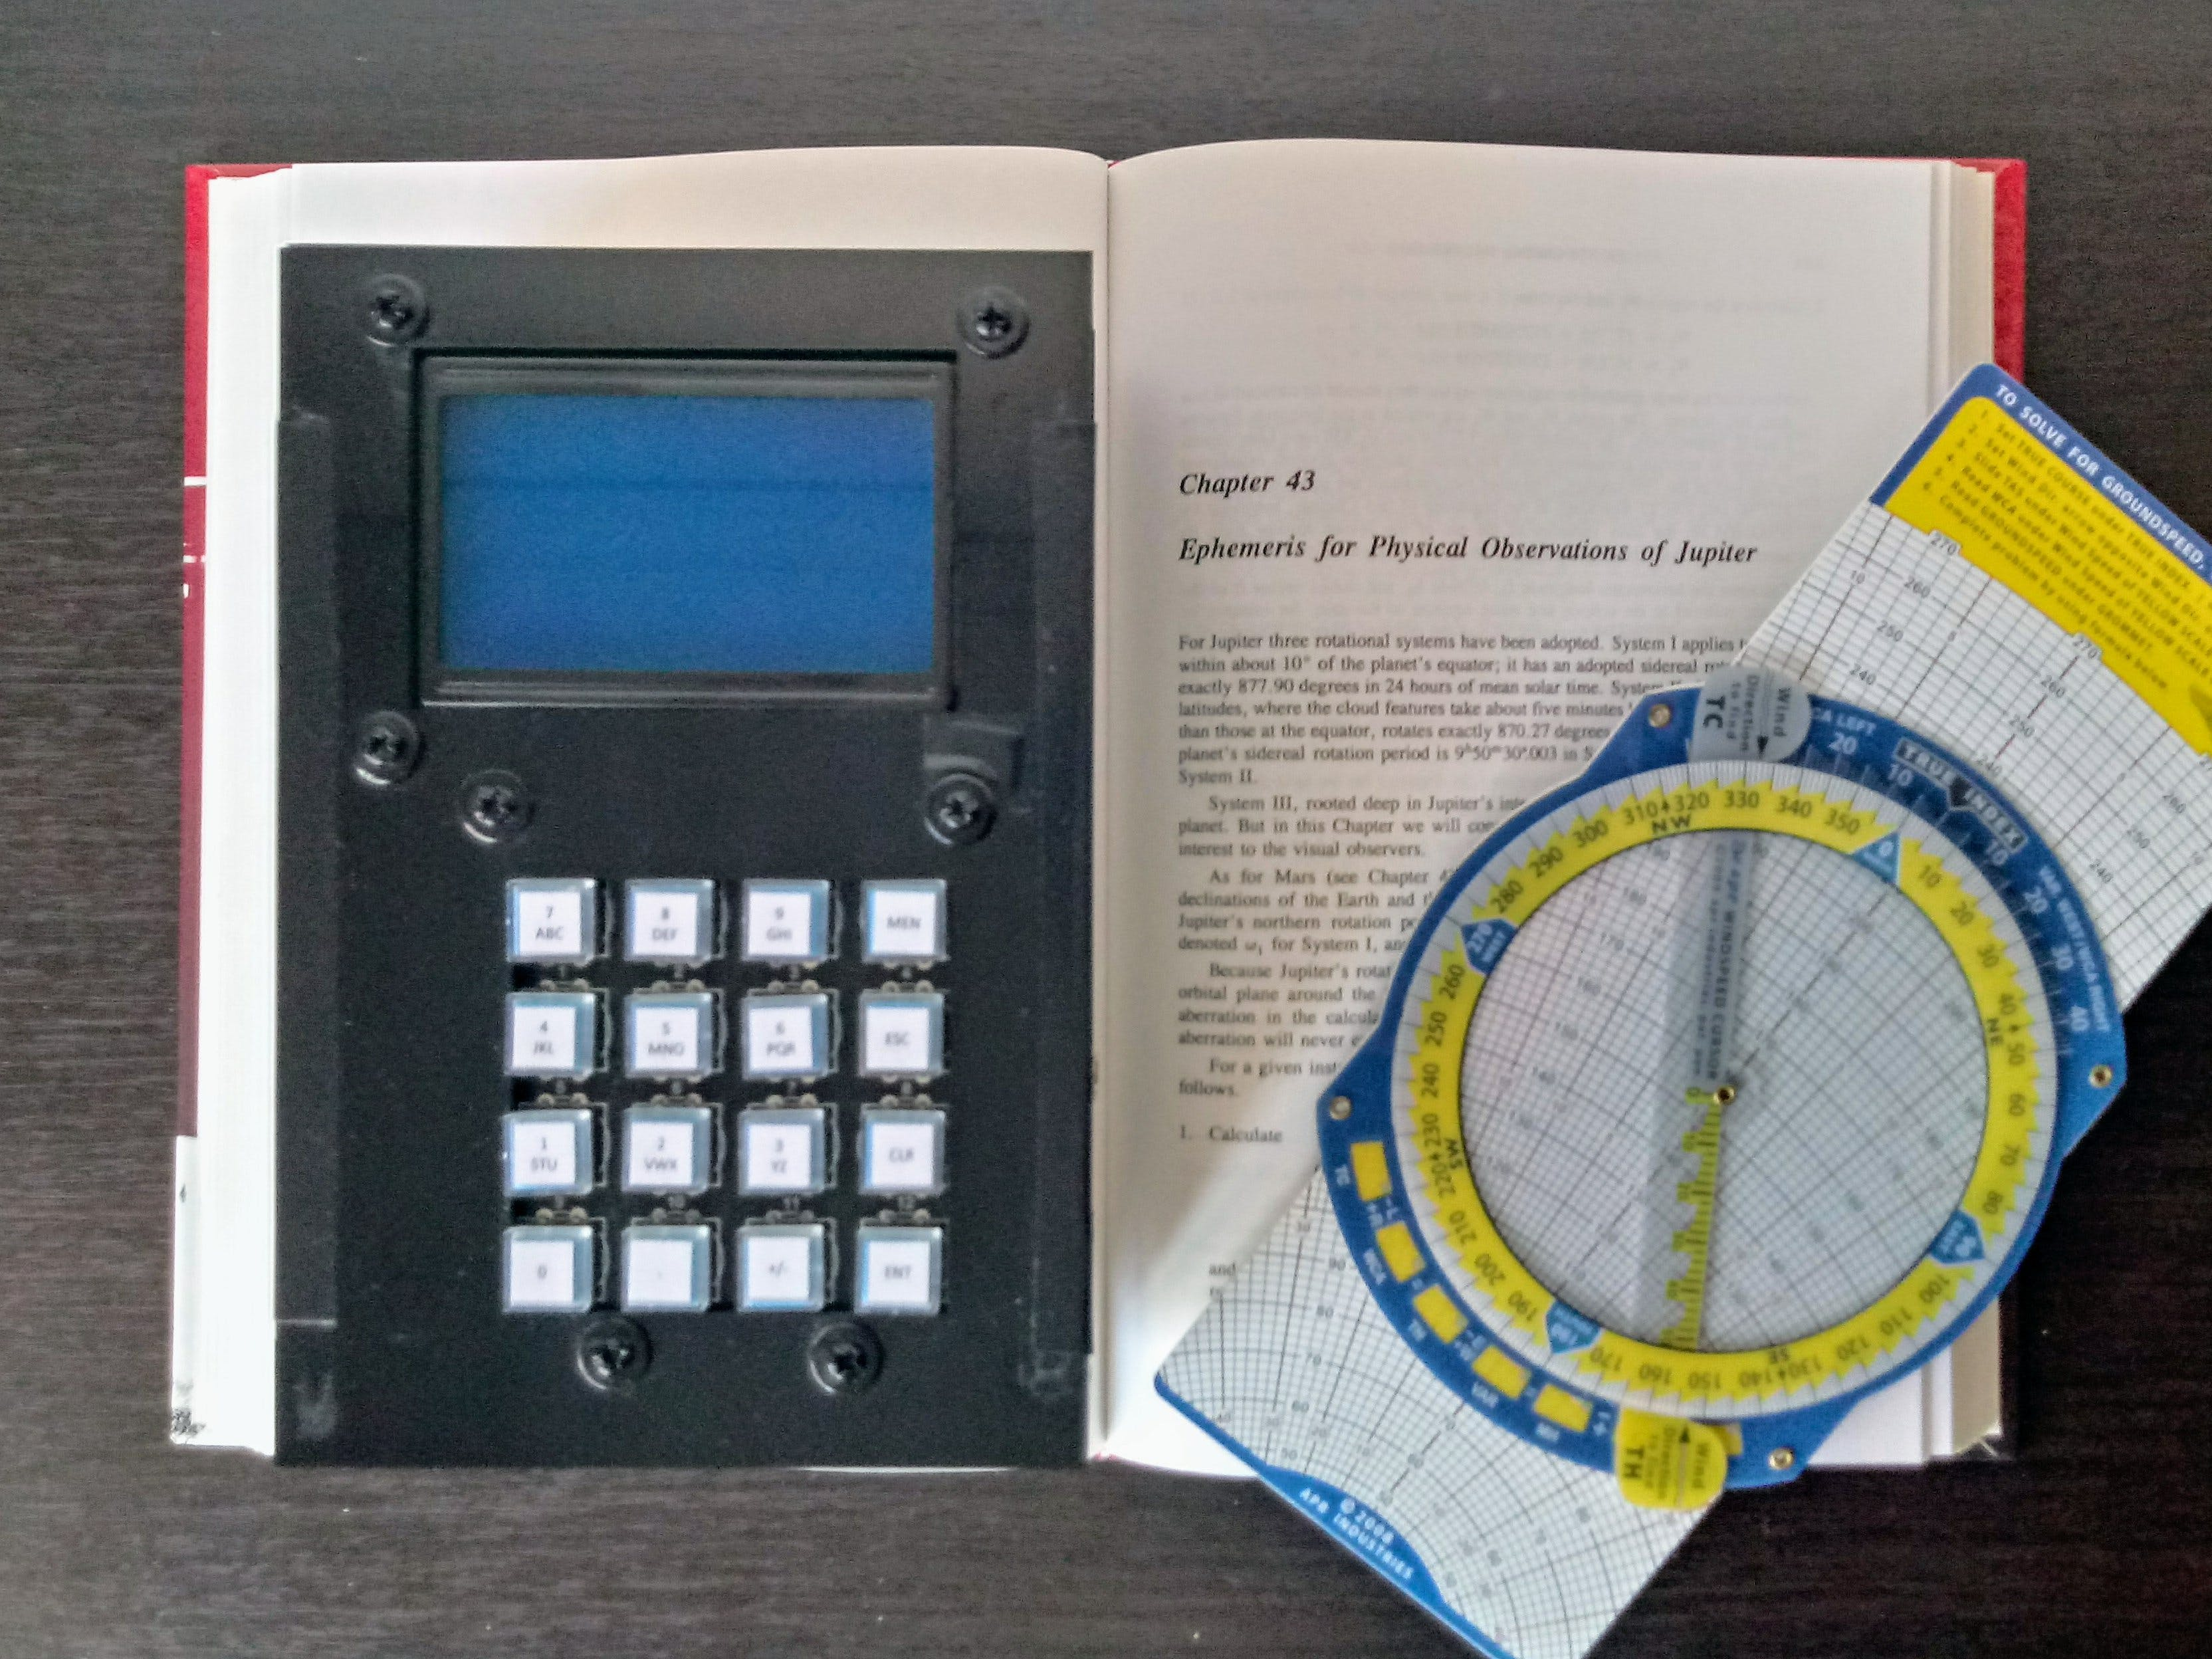 Astronomical and Flight Navigation Computer